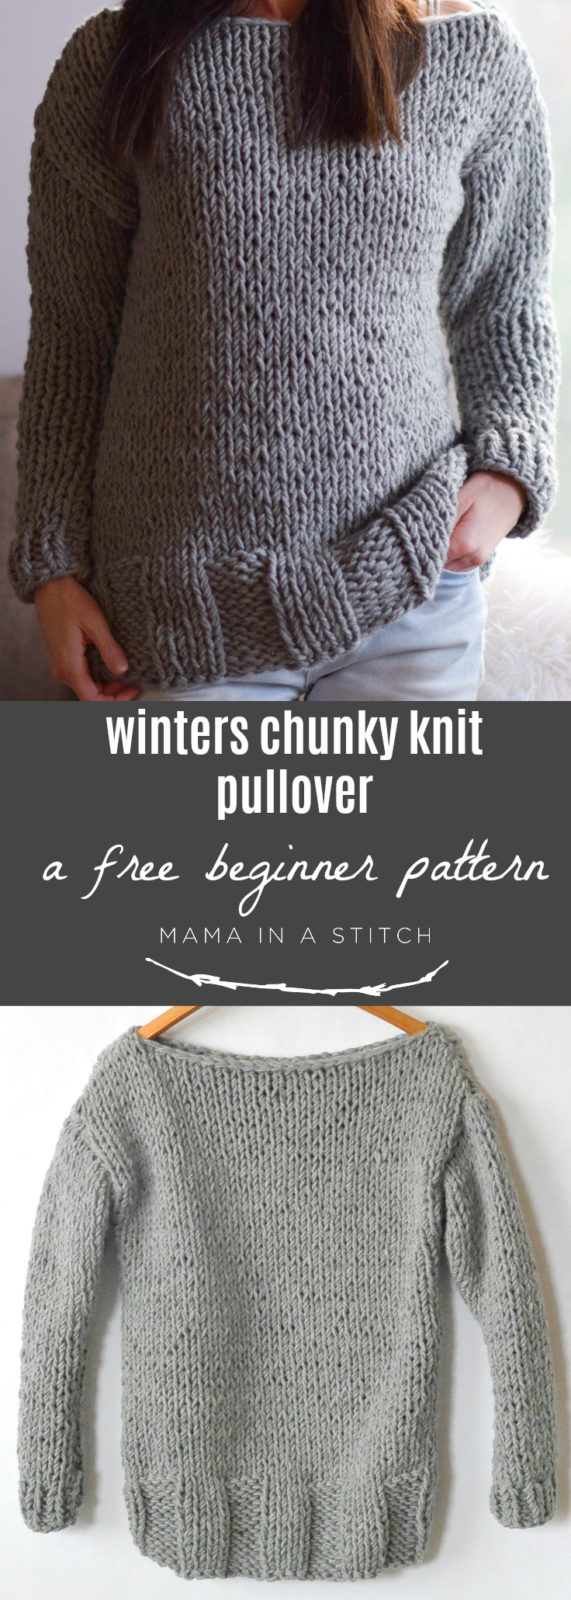 Knit Sweaters Patterns Winters Chunky Easy Knit Pullover Pattern Mama In A Stitch